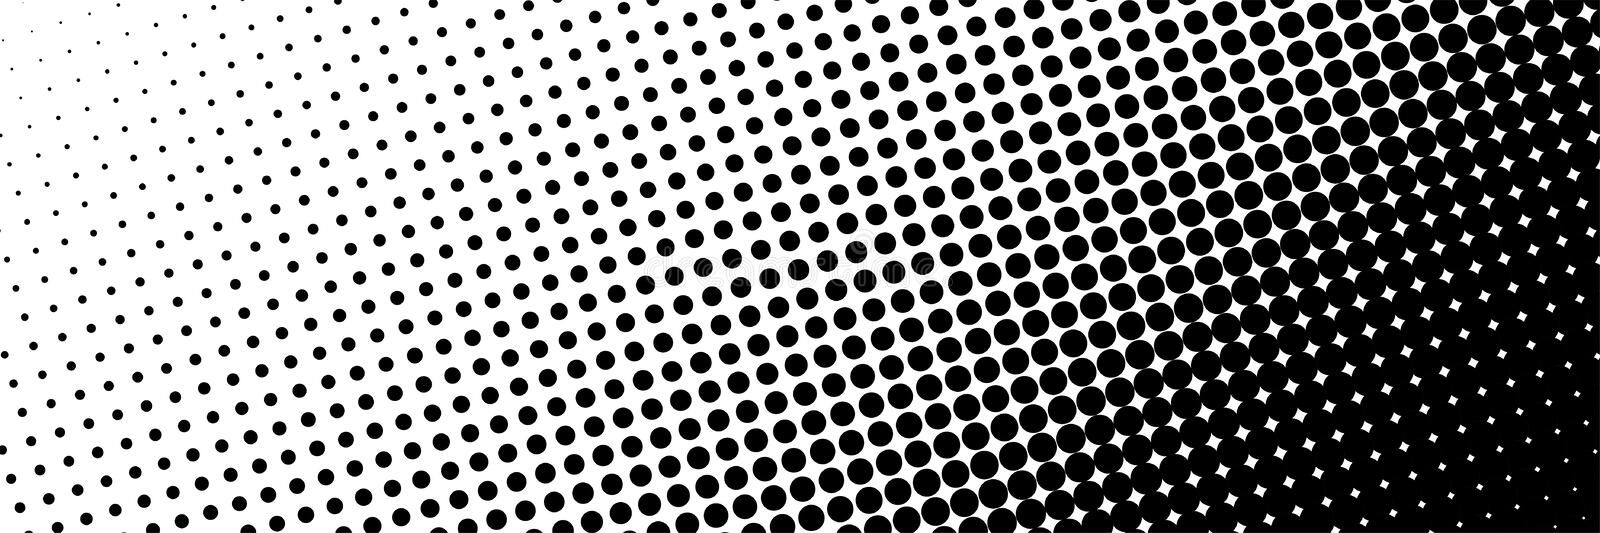 Dots Background de semitono oscuro Fondo abstracto simple ilustración del vector